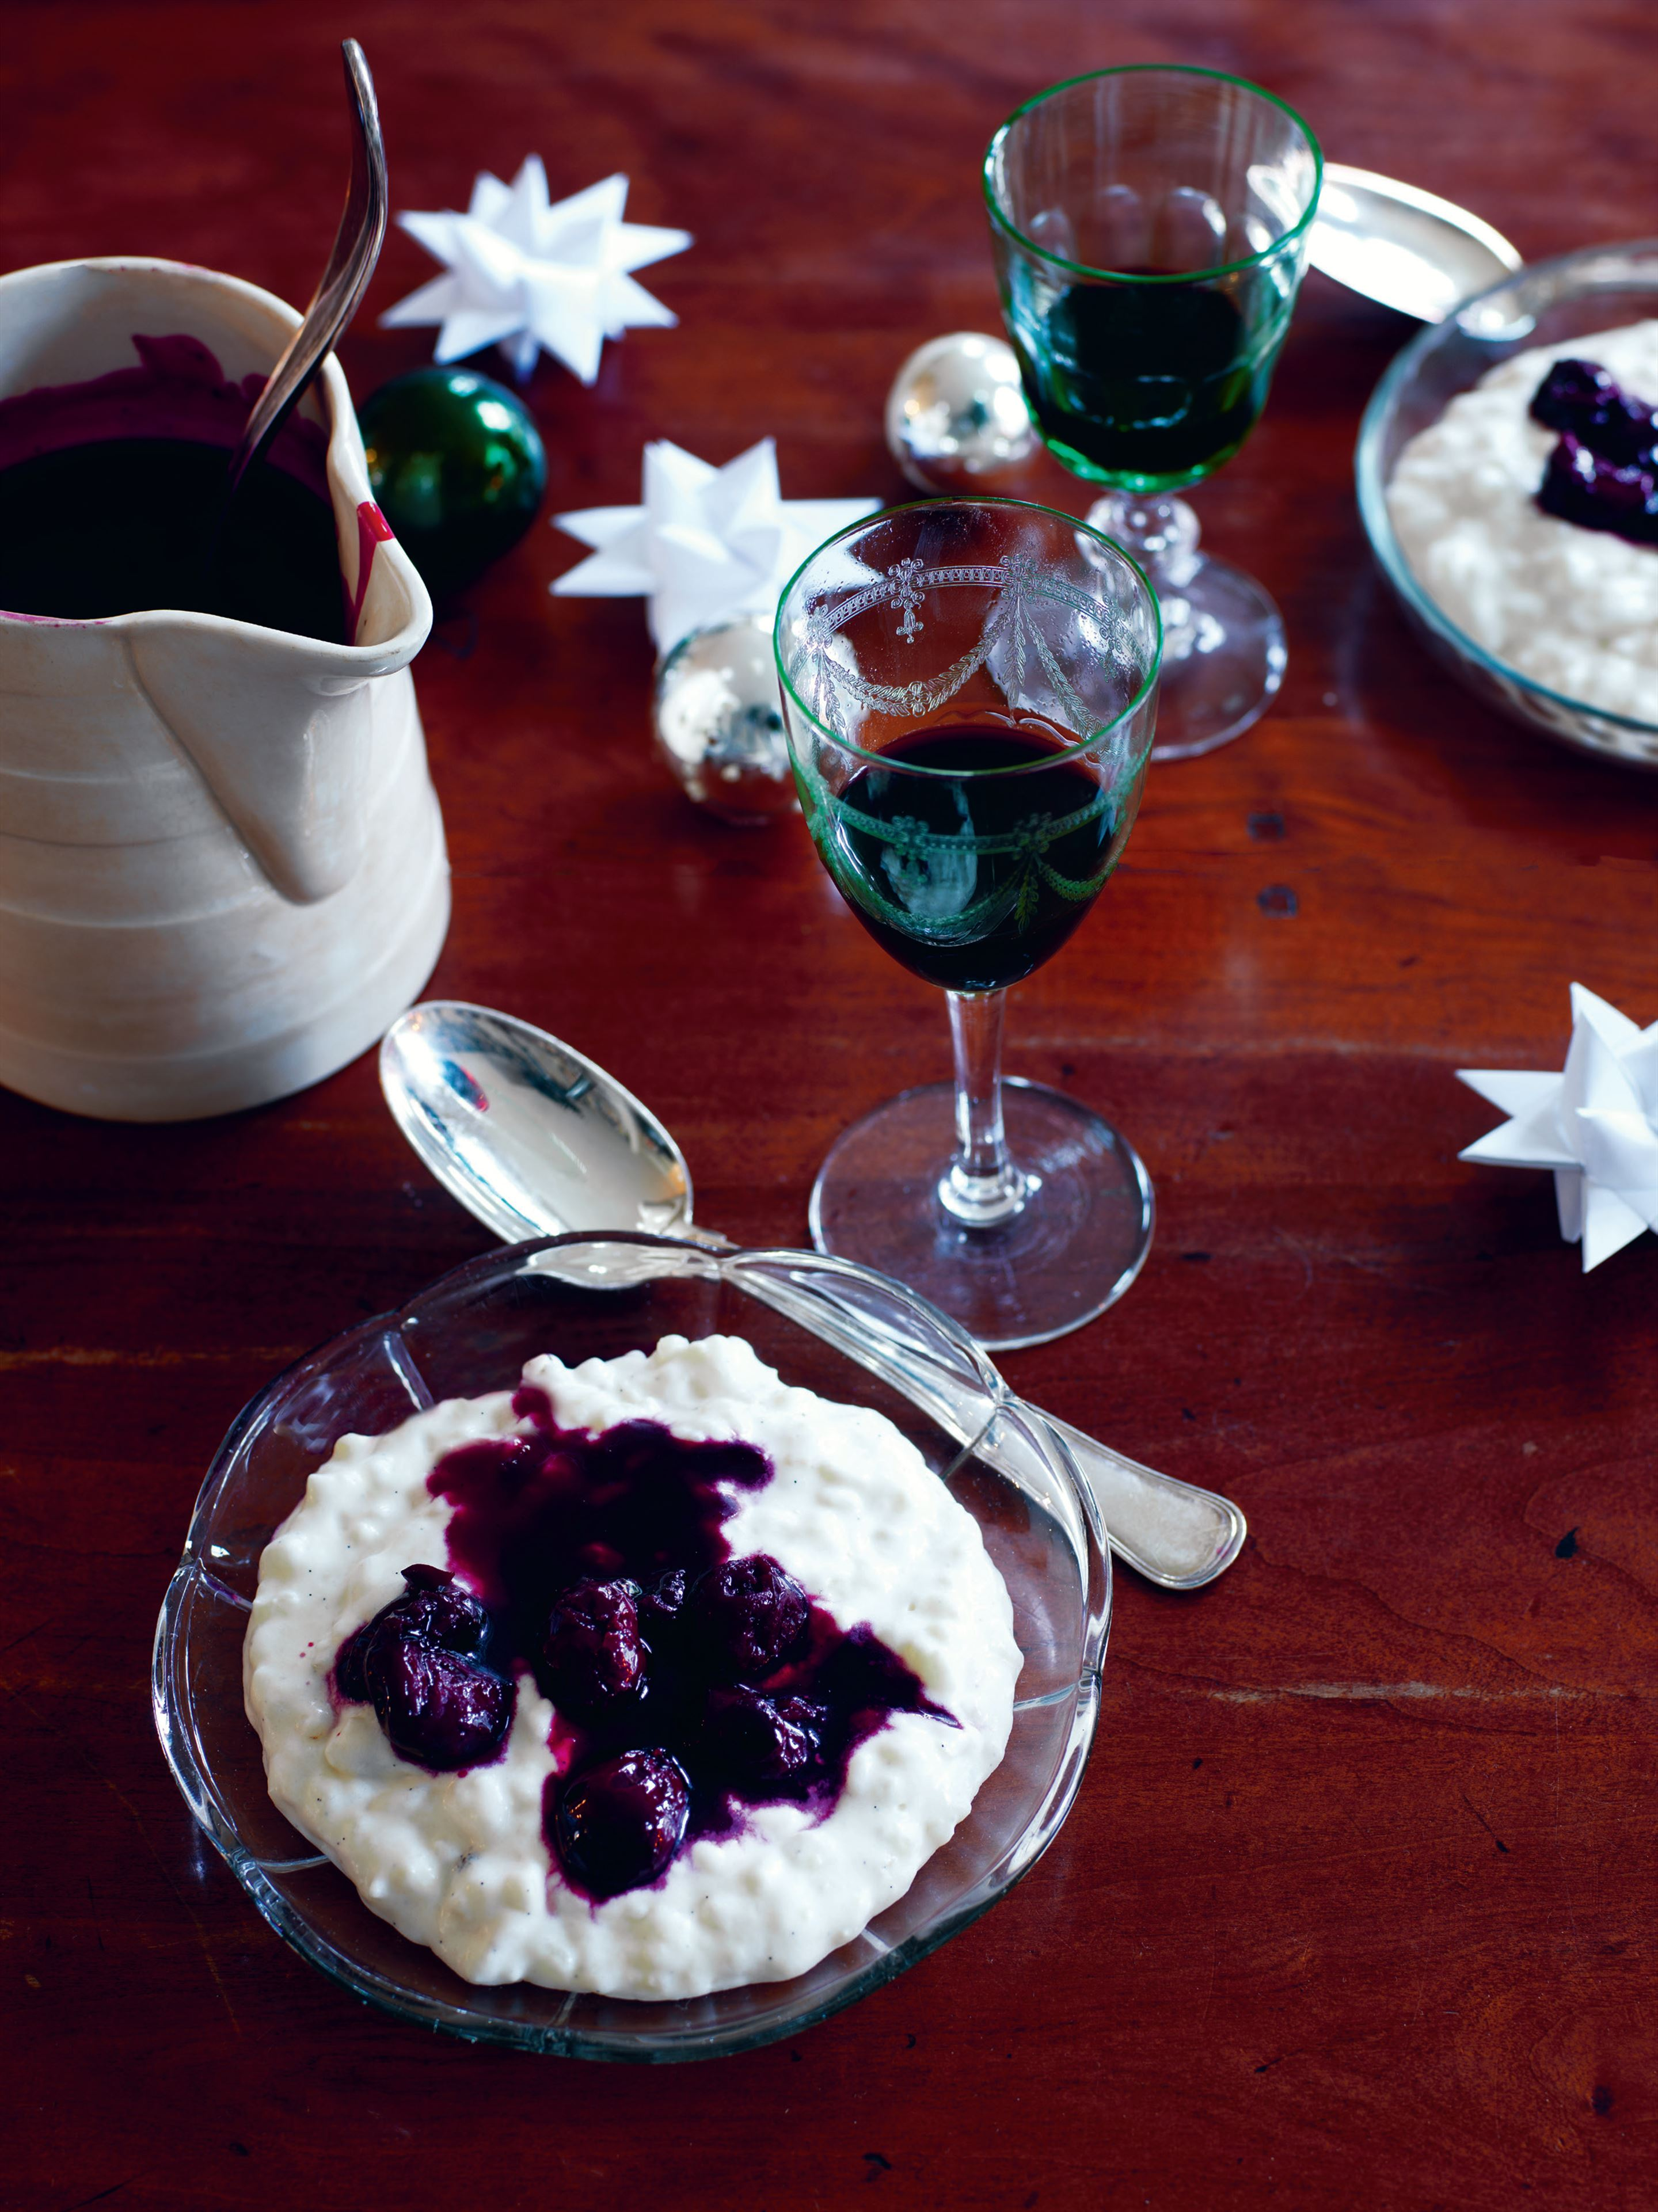 Cold rice pudding with warm cherry sauce